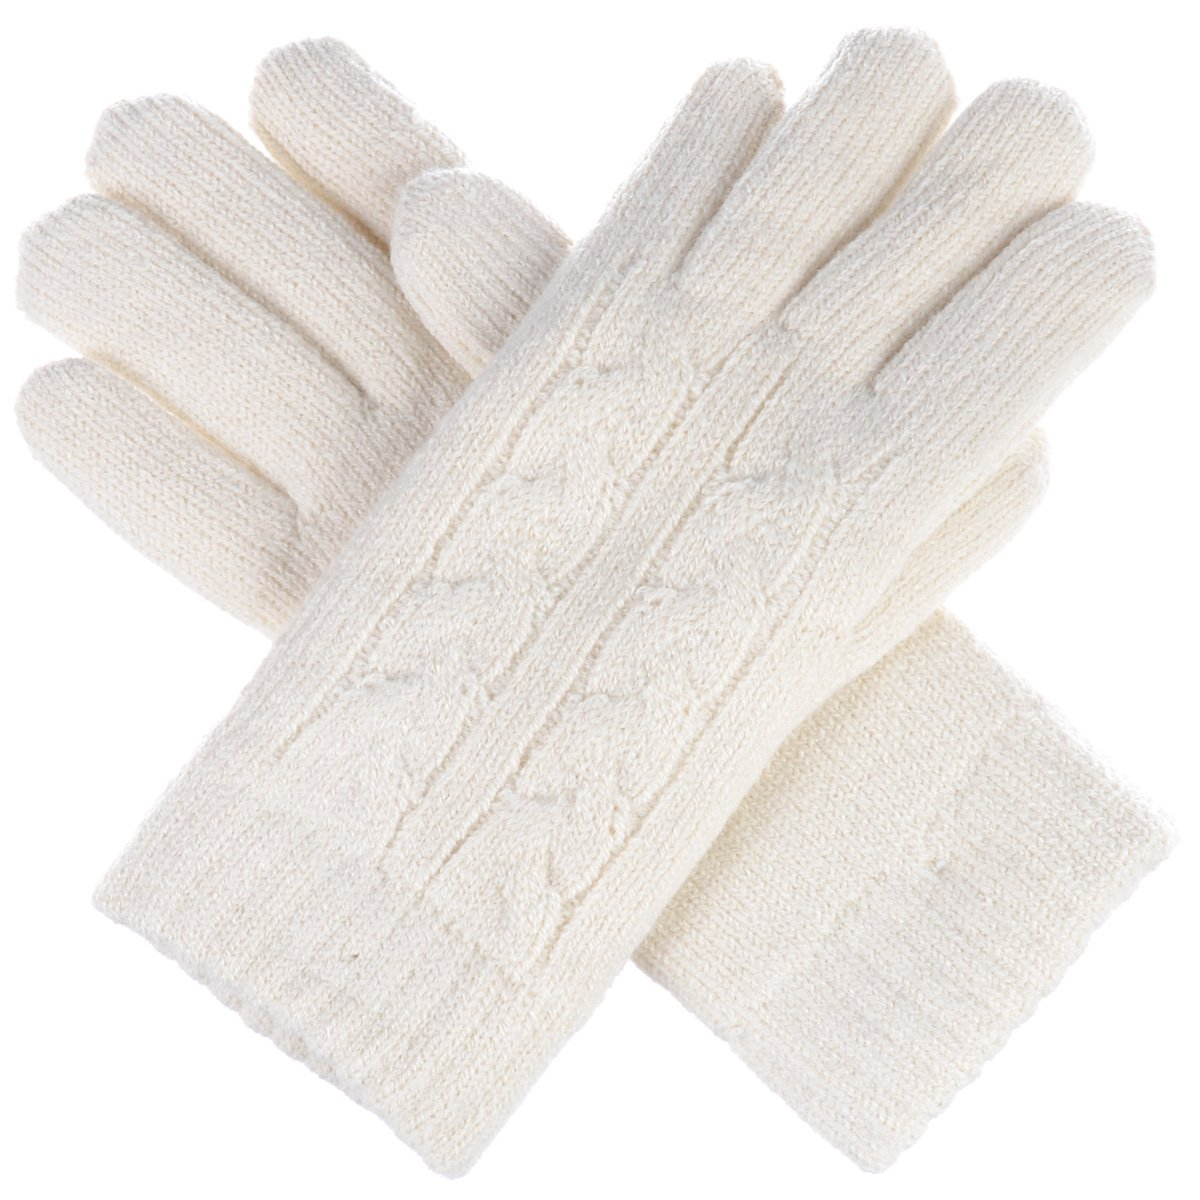 BYOS Winter Womens Cozy Cable Knit Pattern Plush Fleece Lined Gloves (Ivory Double Cable)